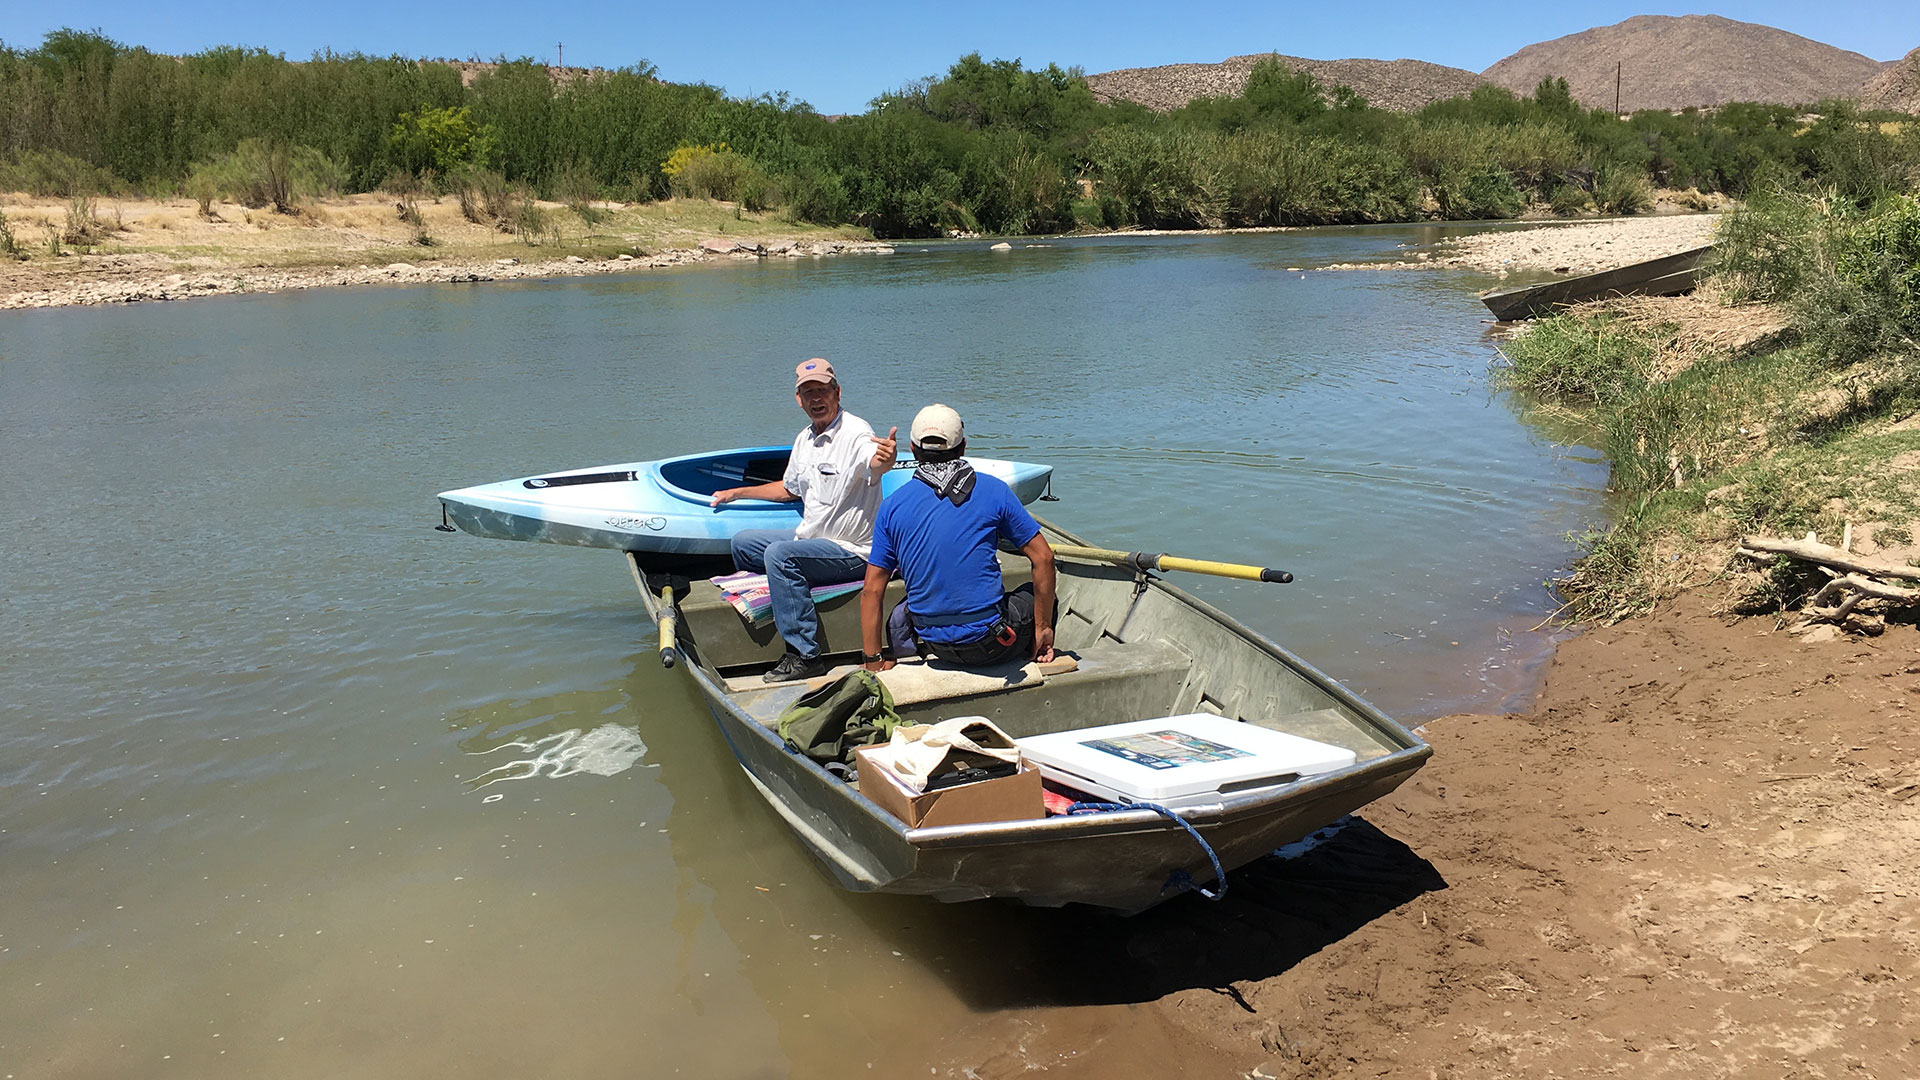 Mike Davidson, at fore of boat, holds the concession permit in the United States to operate the rowboats that ferry people back and forth across the Rio Grande between Boquillas del Carmen, Coahuila and Big Bend National Park.